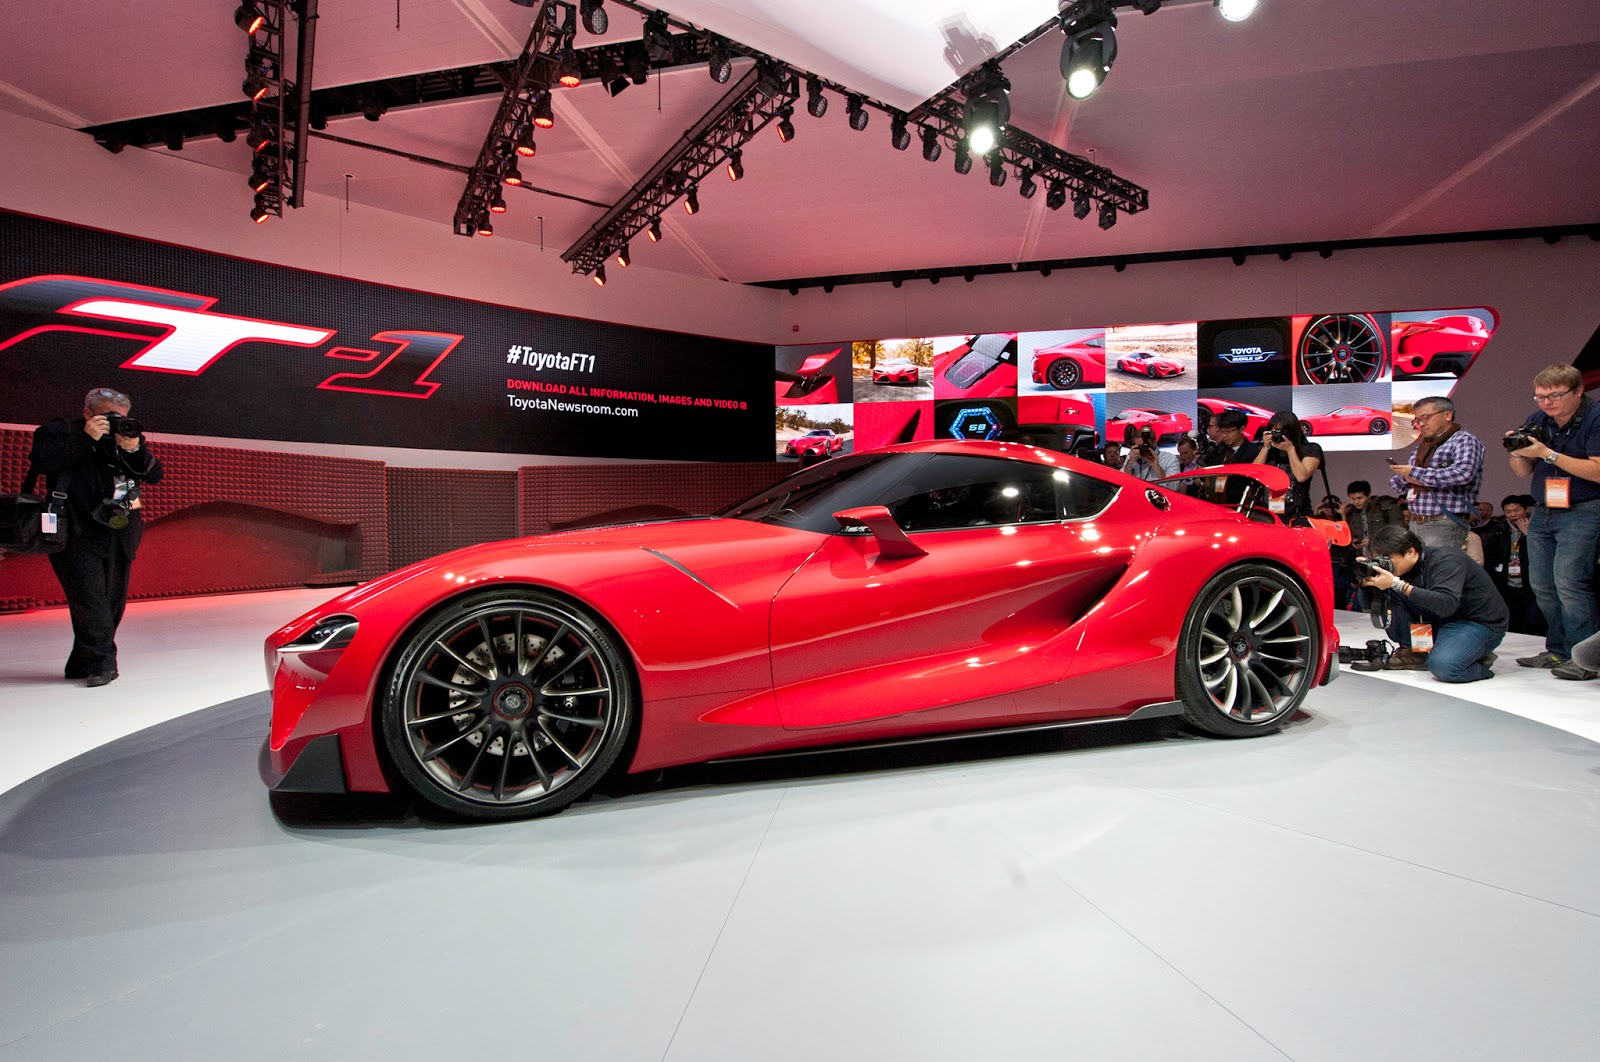 Source Www Motortrend Com Future Concept_vehicles 1403_toyota_ft_1_concept_first_look Ixzz2wyi4ohsm